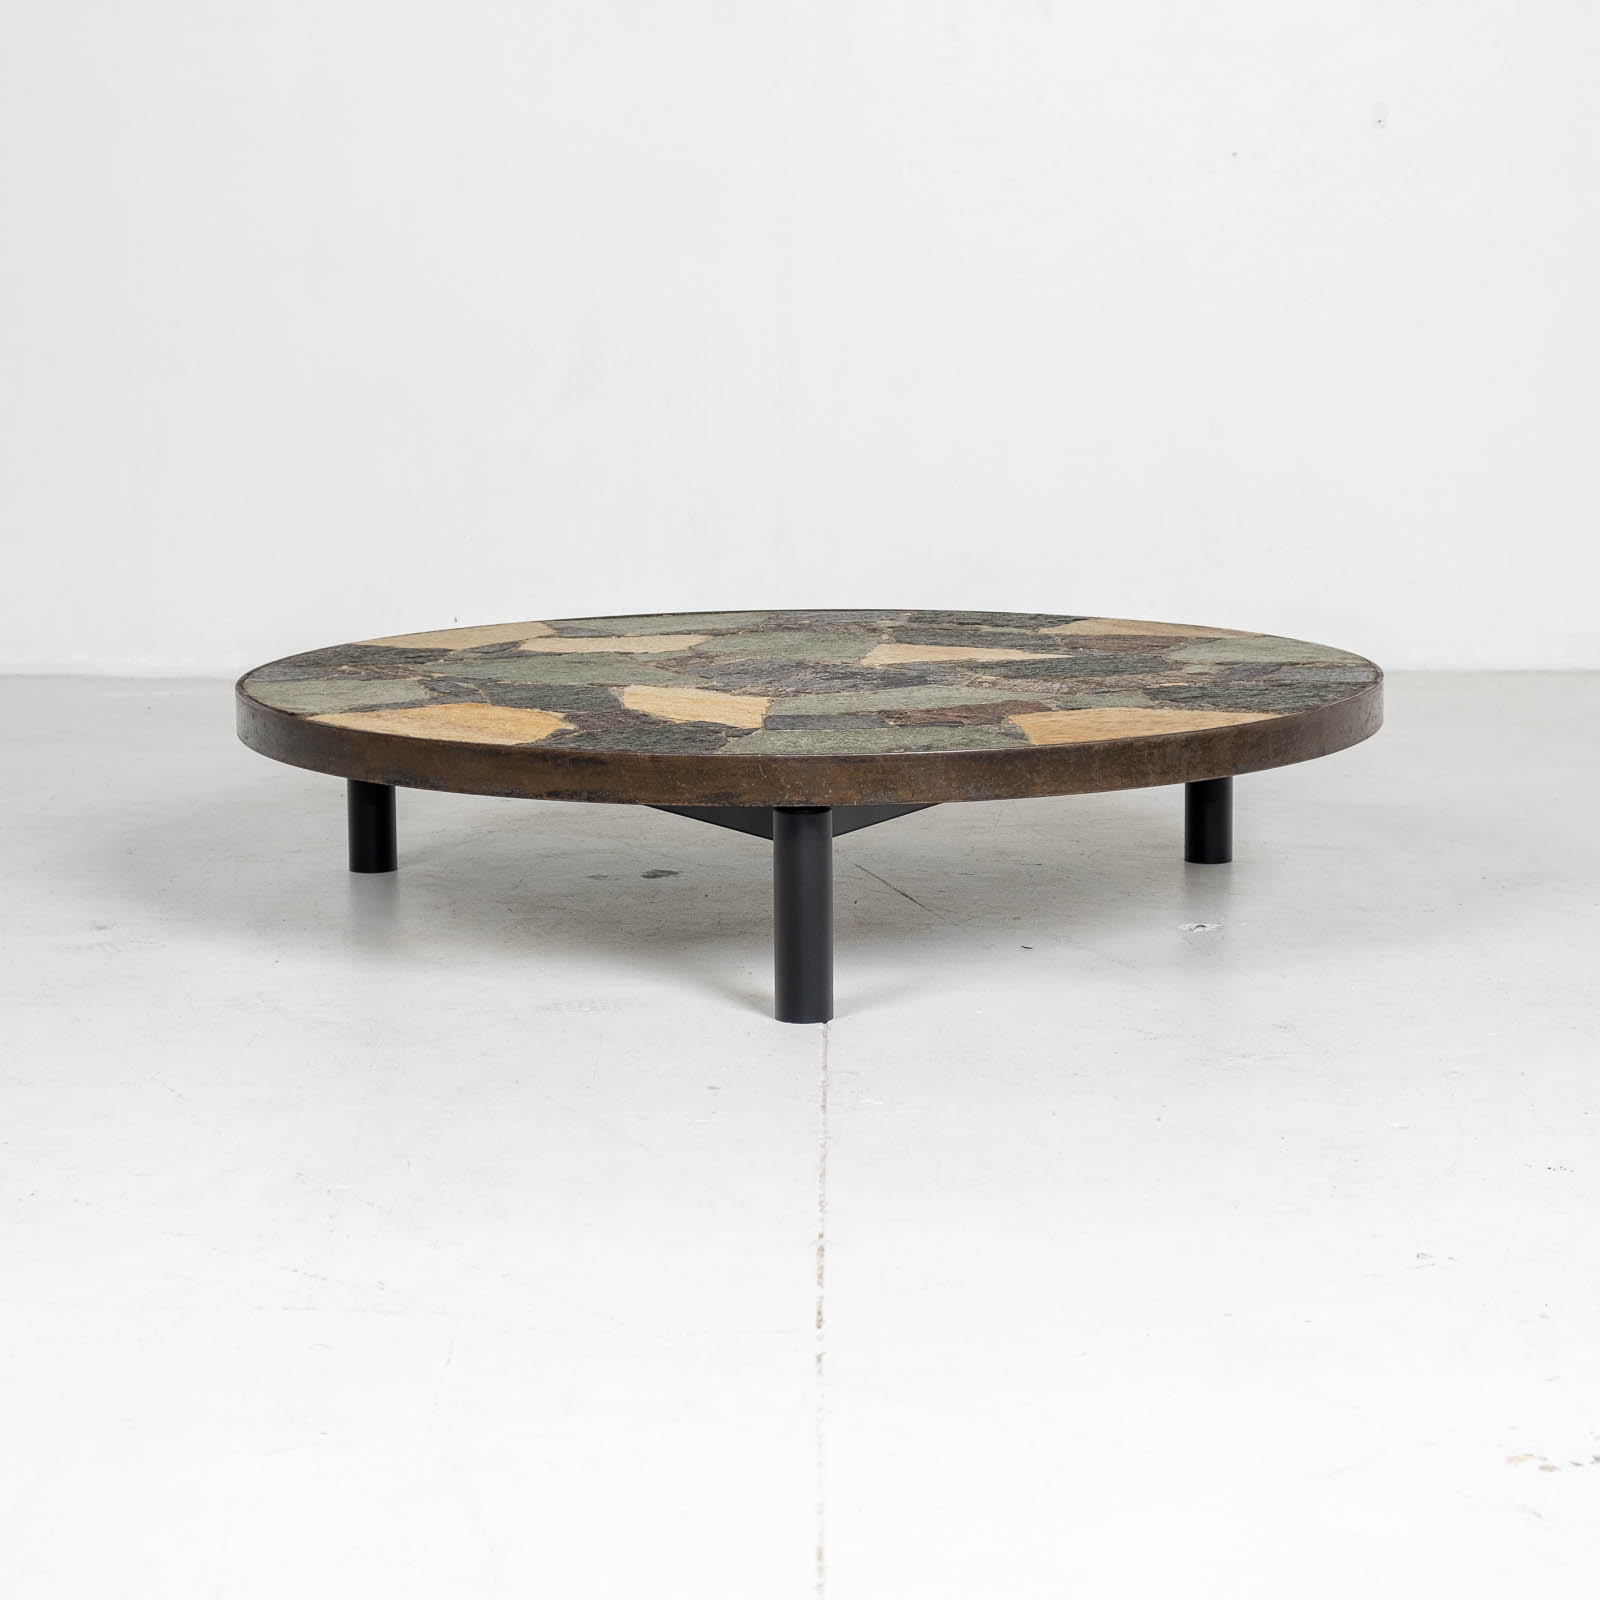 Circular Coffee Table In The Style Of Paul Kingma With Mosaic Slate Top And Metal Edge, 1970s, The Netherlands 00007